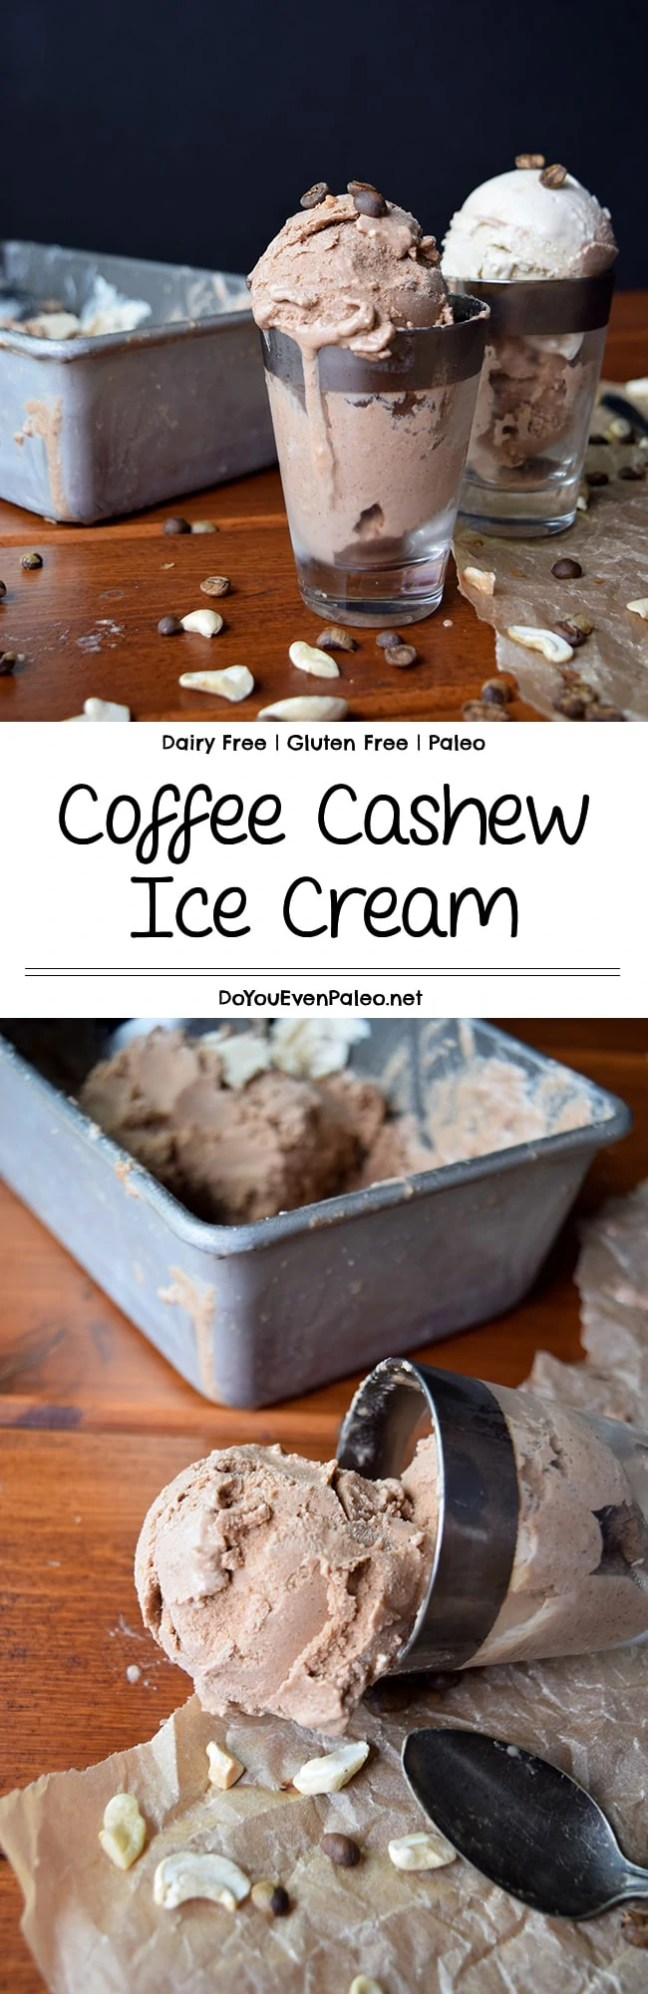 Coffee Cashew Ice Cream - an incredibly thick and creamy ice cream made with cashews and cold brew coffee - a match made in heaven! #glutenfree #paleo #dairyfree | DoYouEvenPaleo.net